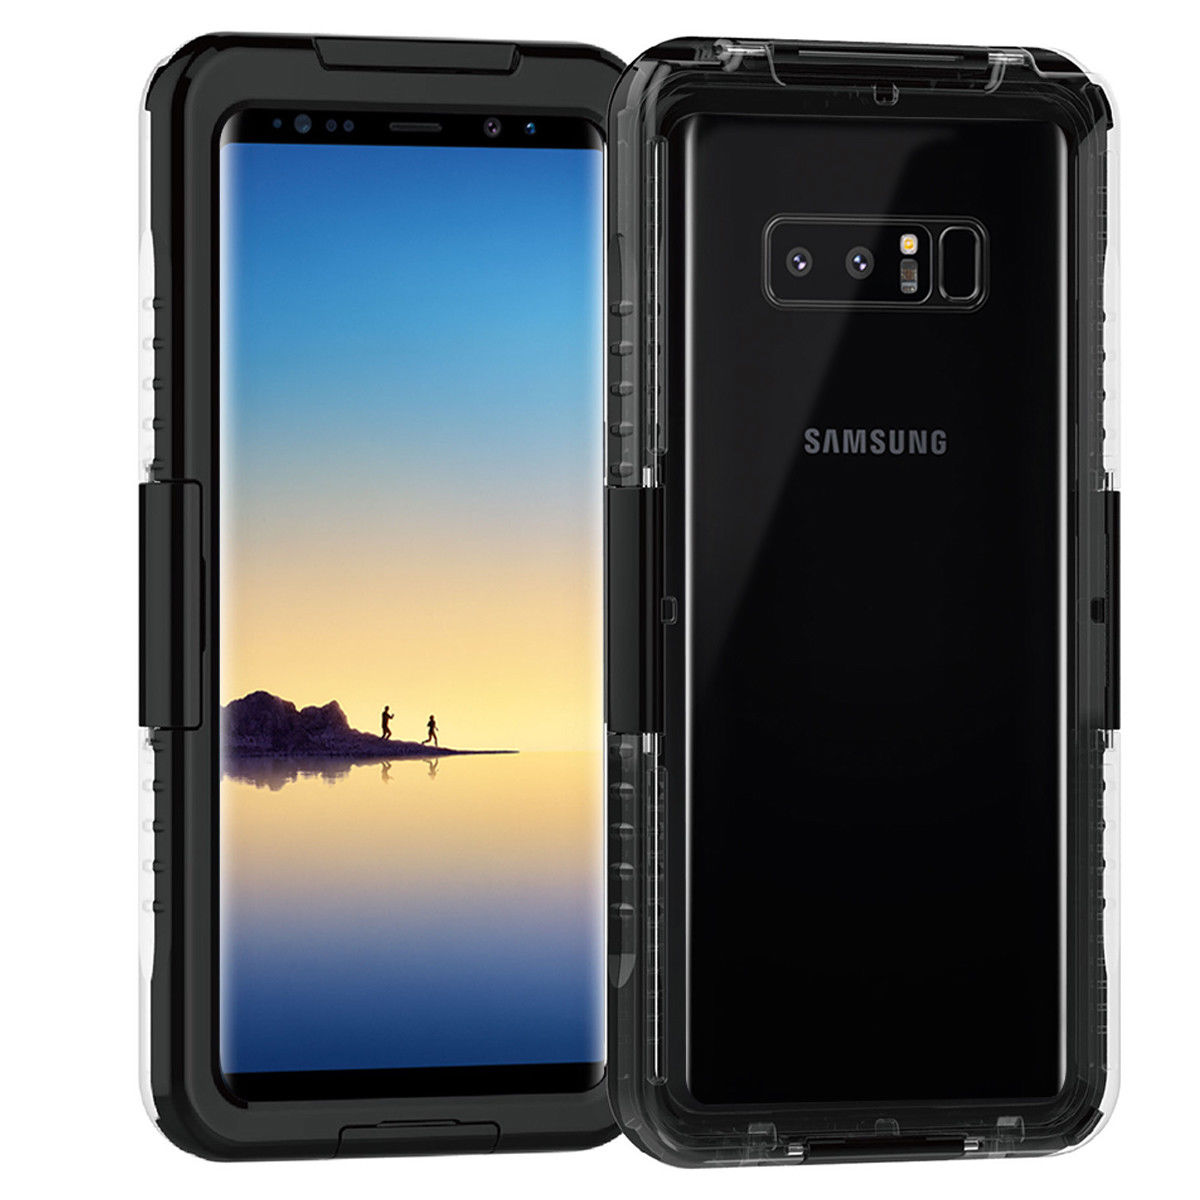 Mignova Galaxy S9 Plus Waterproof Case, Underwater Shockproof SnowProof Full Protection Rugged Shell Slim Full Sealed Cover with Screen Protector for Galaxy S9 Plus 2018 (Black)